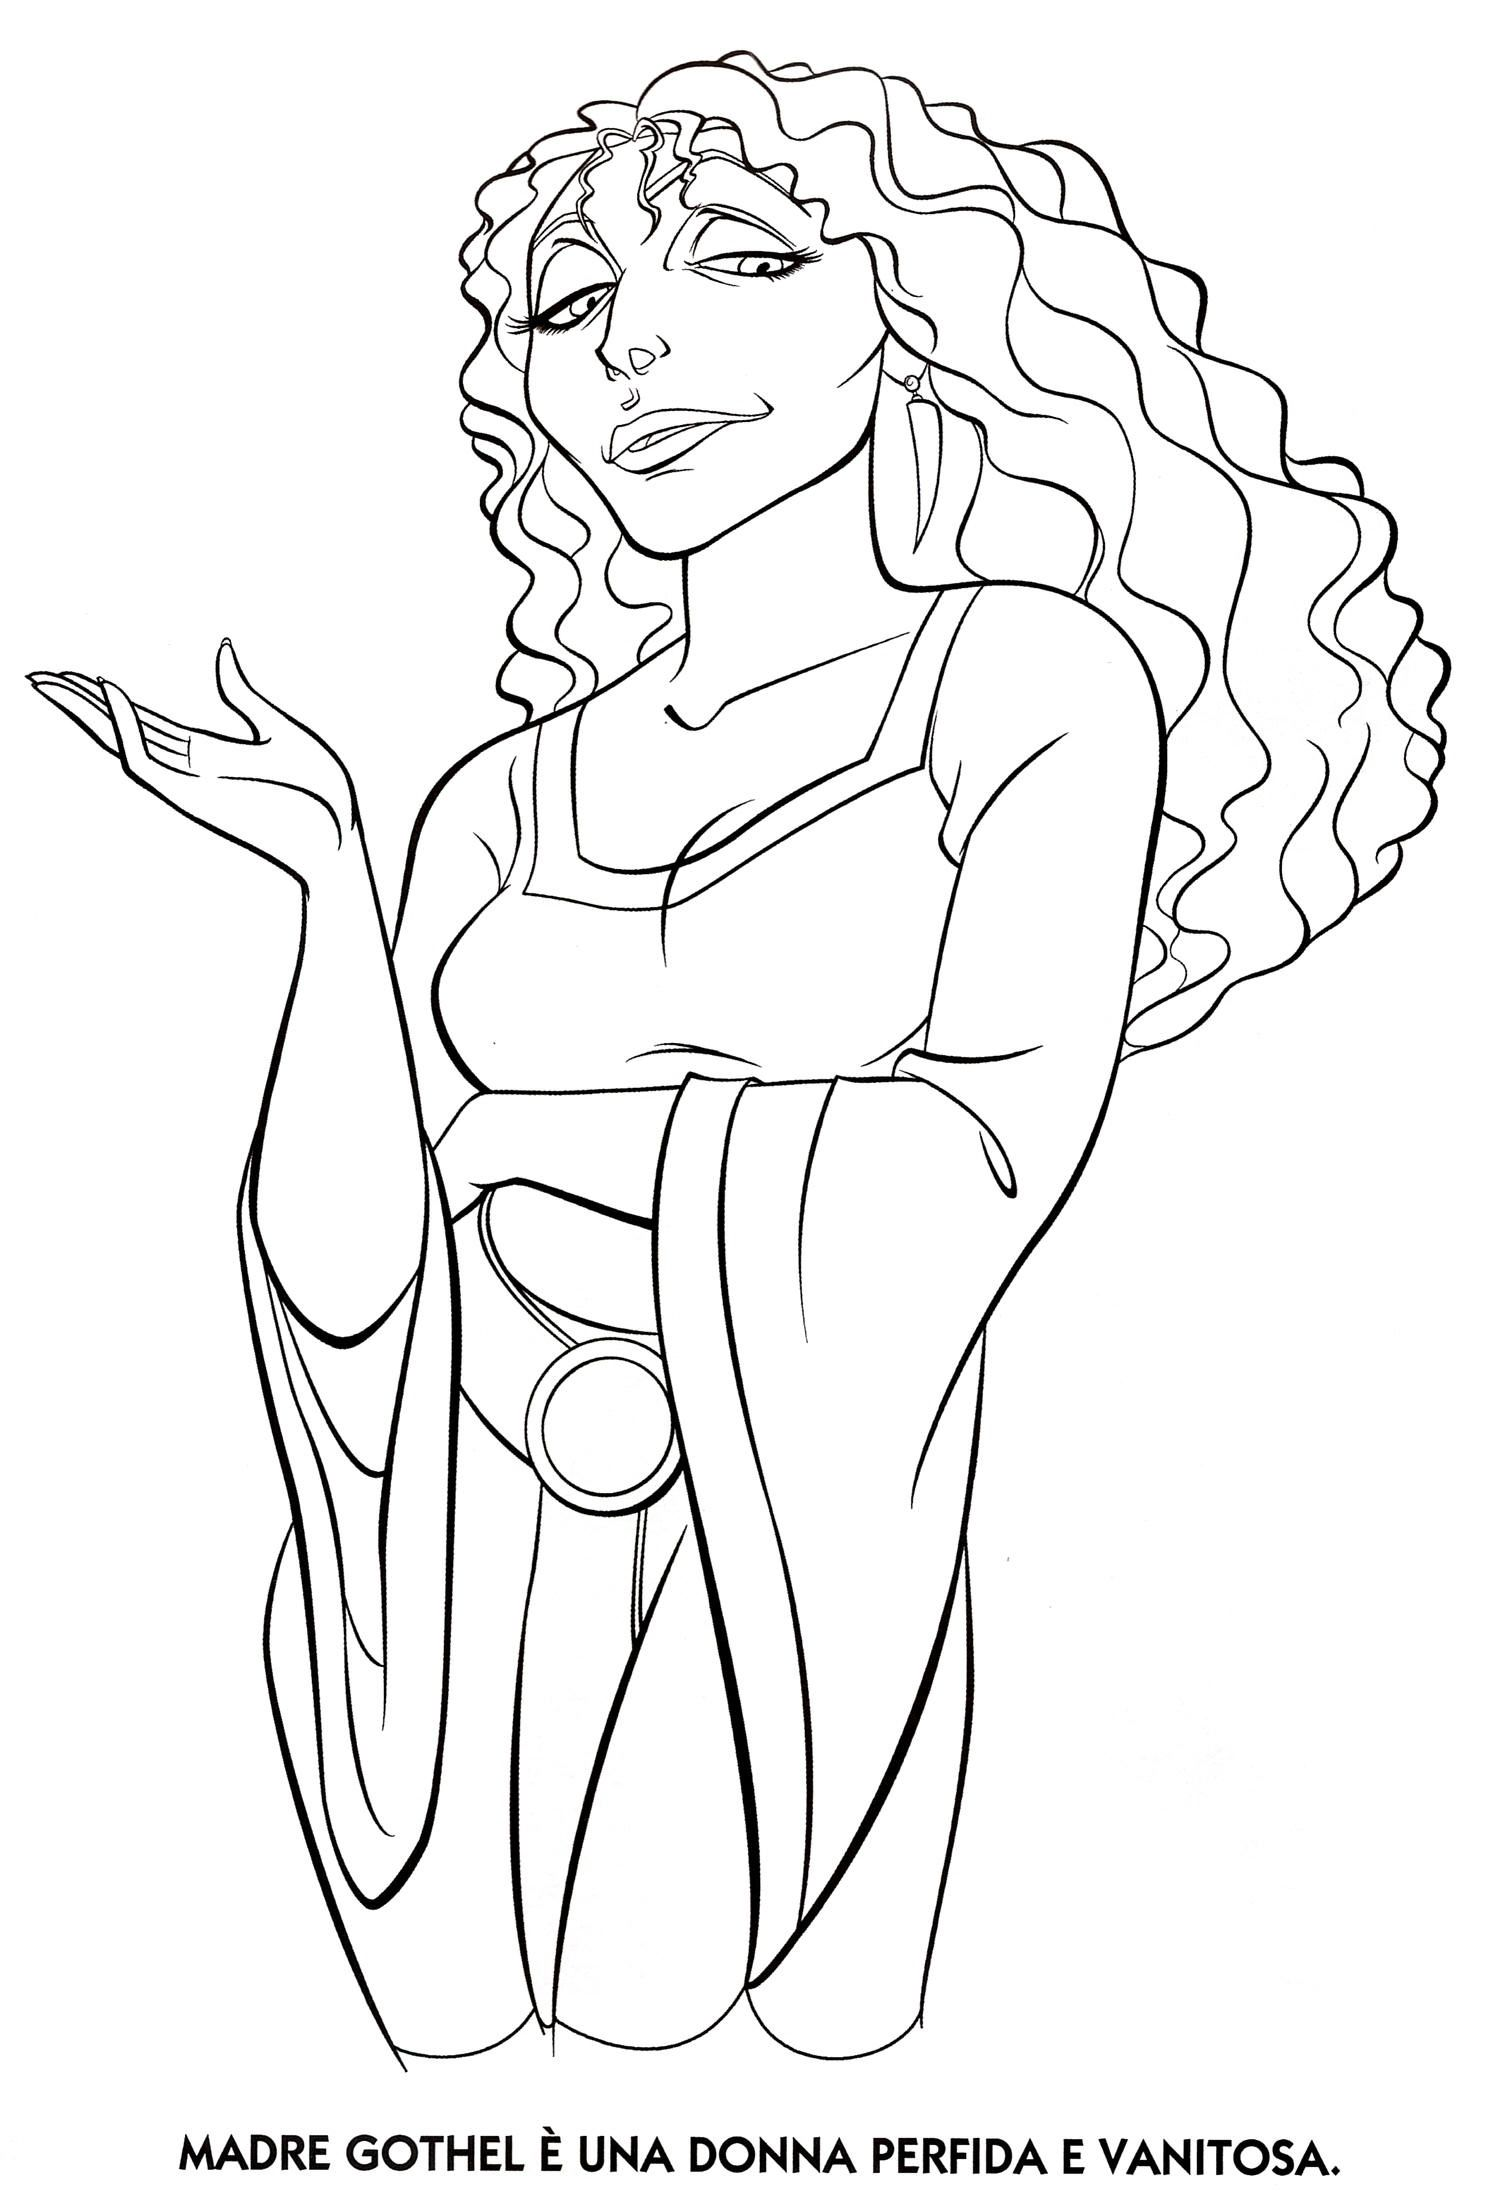 coloring sheets dice mother gothel dibujojpg 15082204